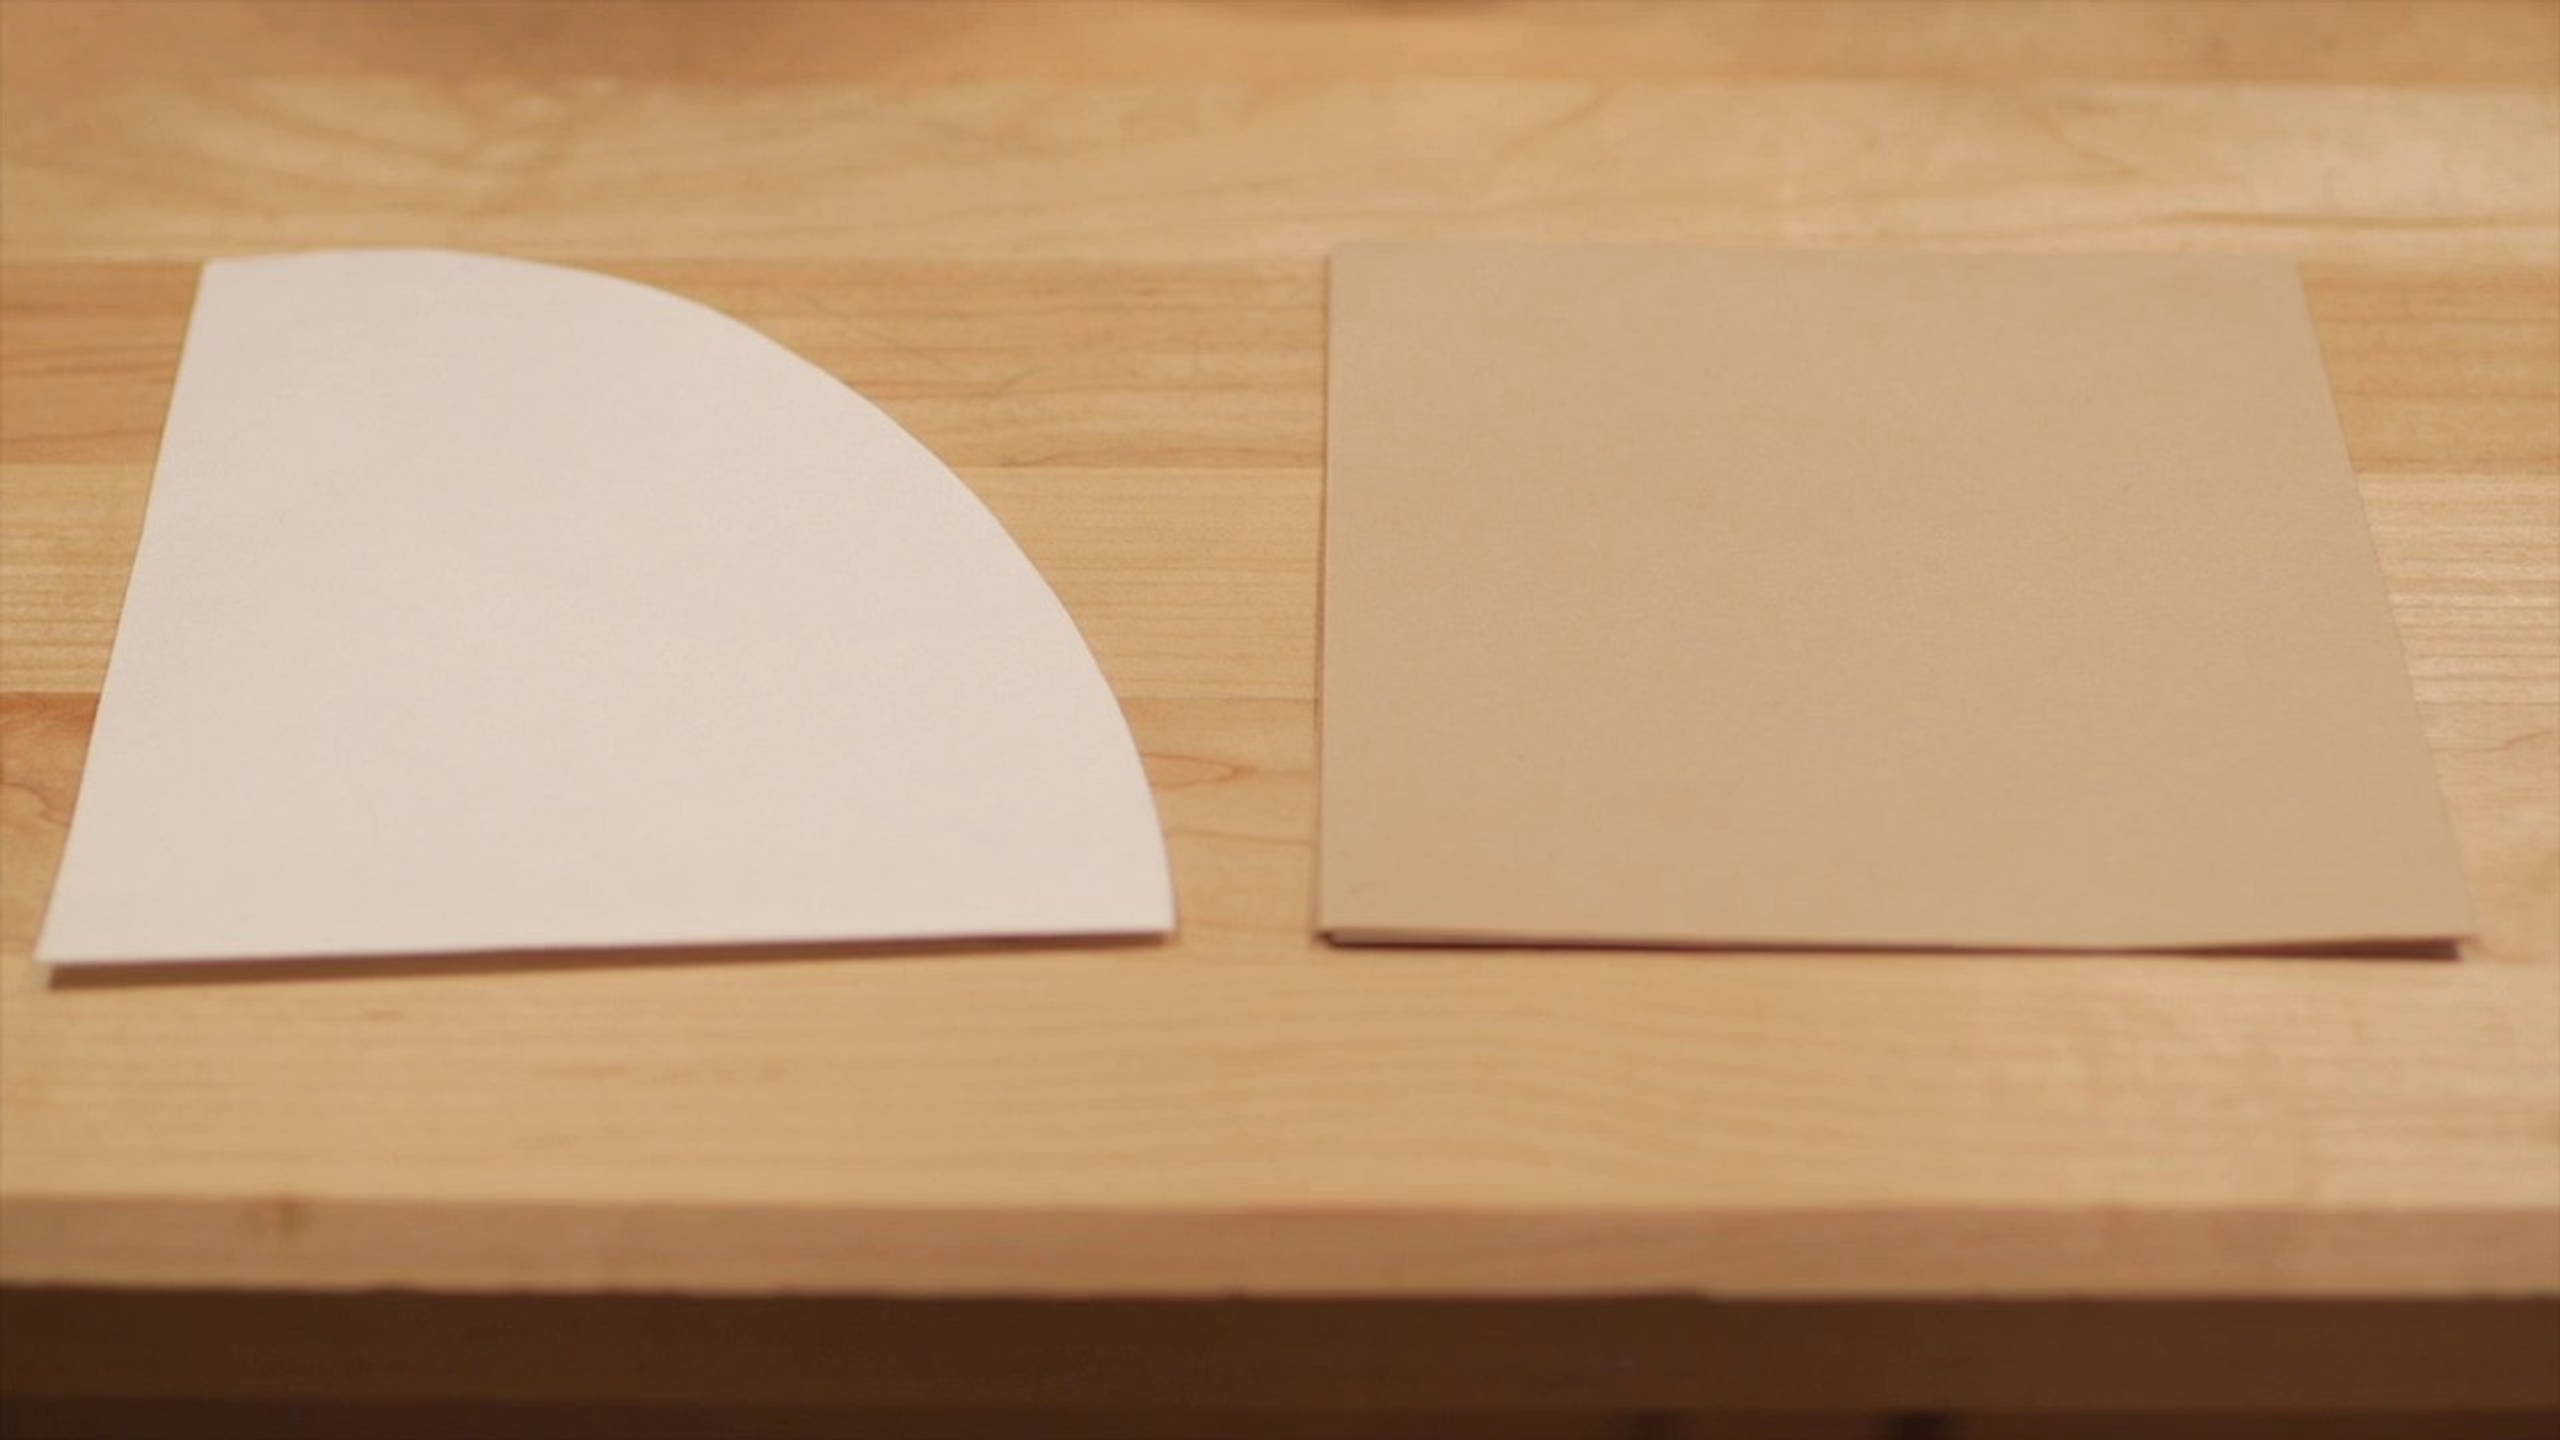 Bleached vs. Natural Coffee Filters